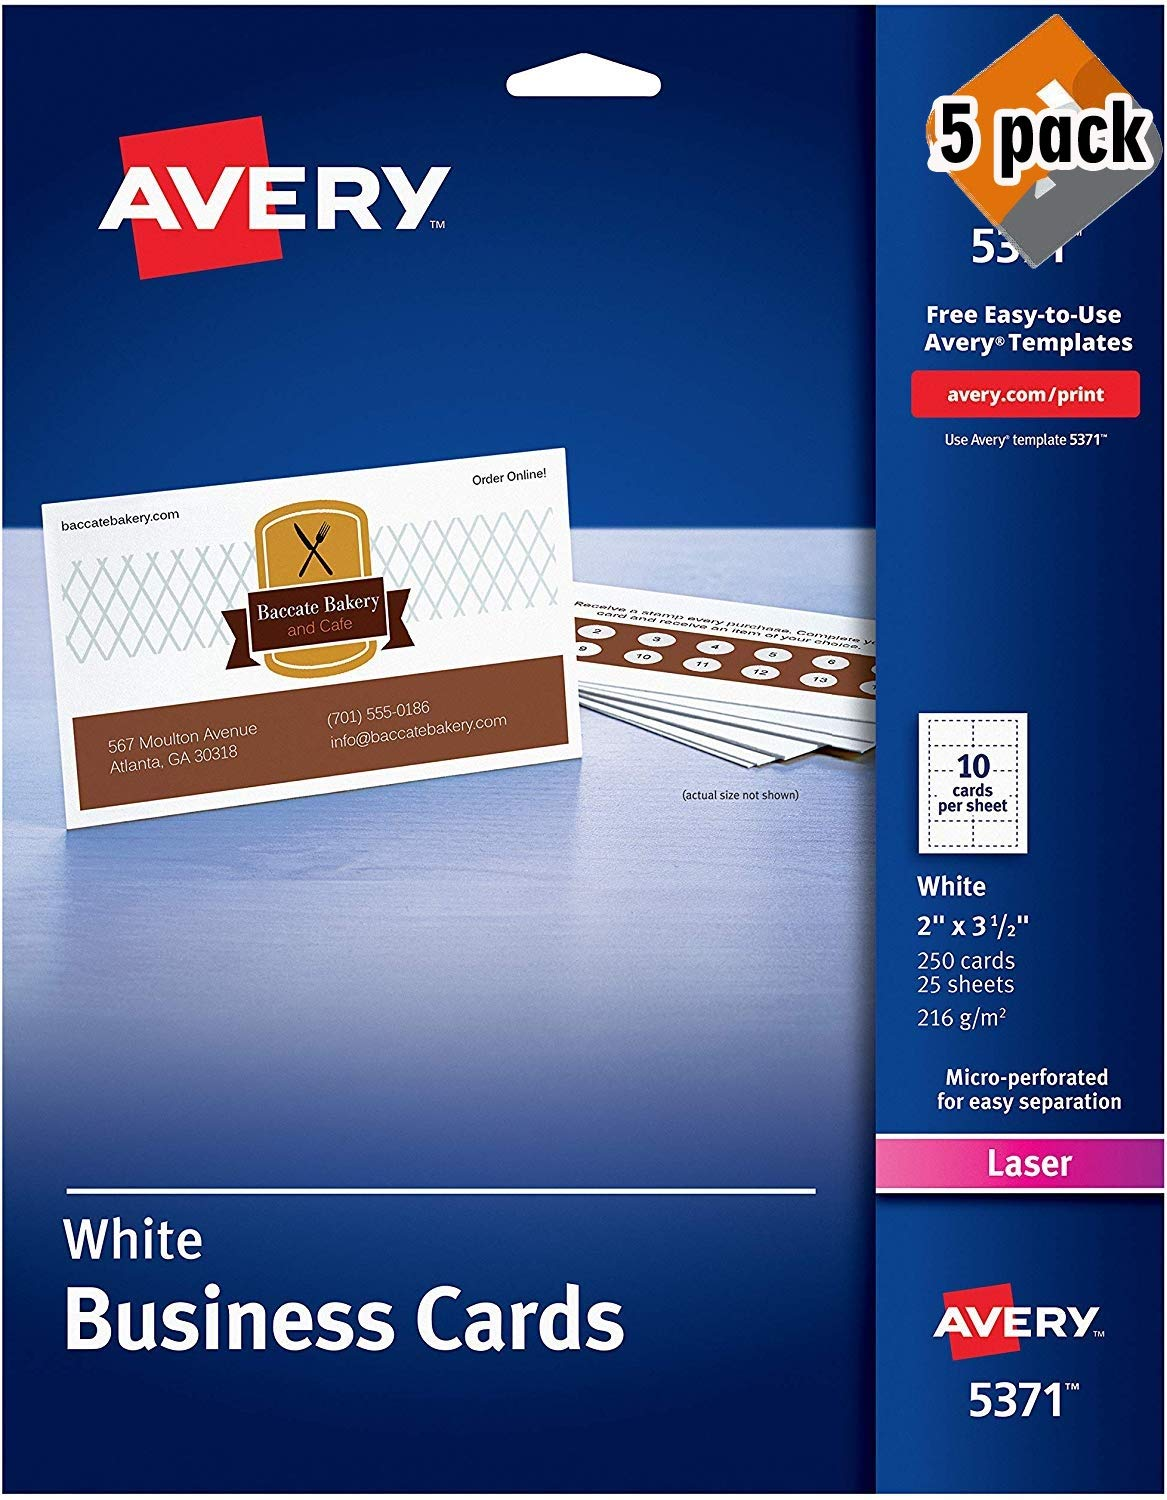 Avery Printable Business Cards, Laser Printers, 250 Cards, 2 x 3.5 (5371), 5 Pack by AVERY